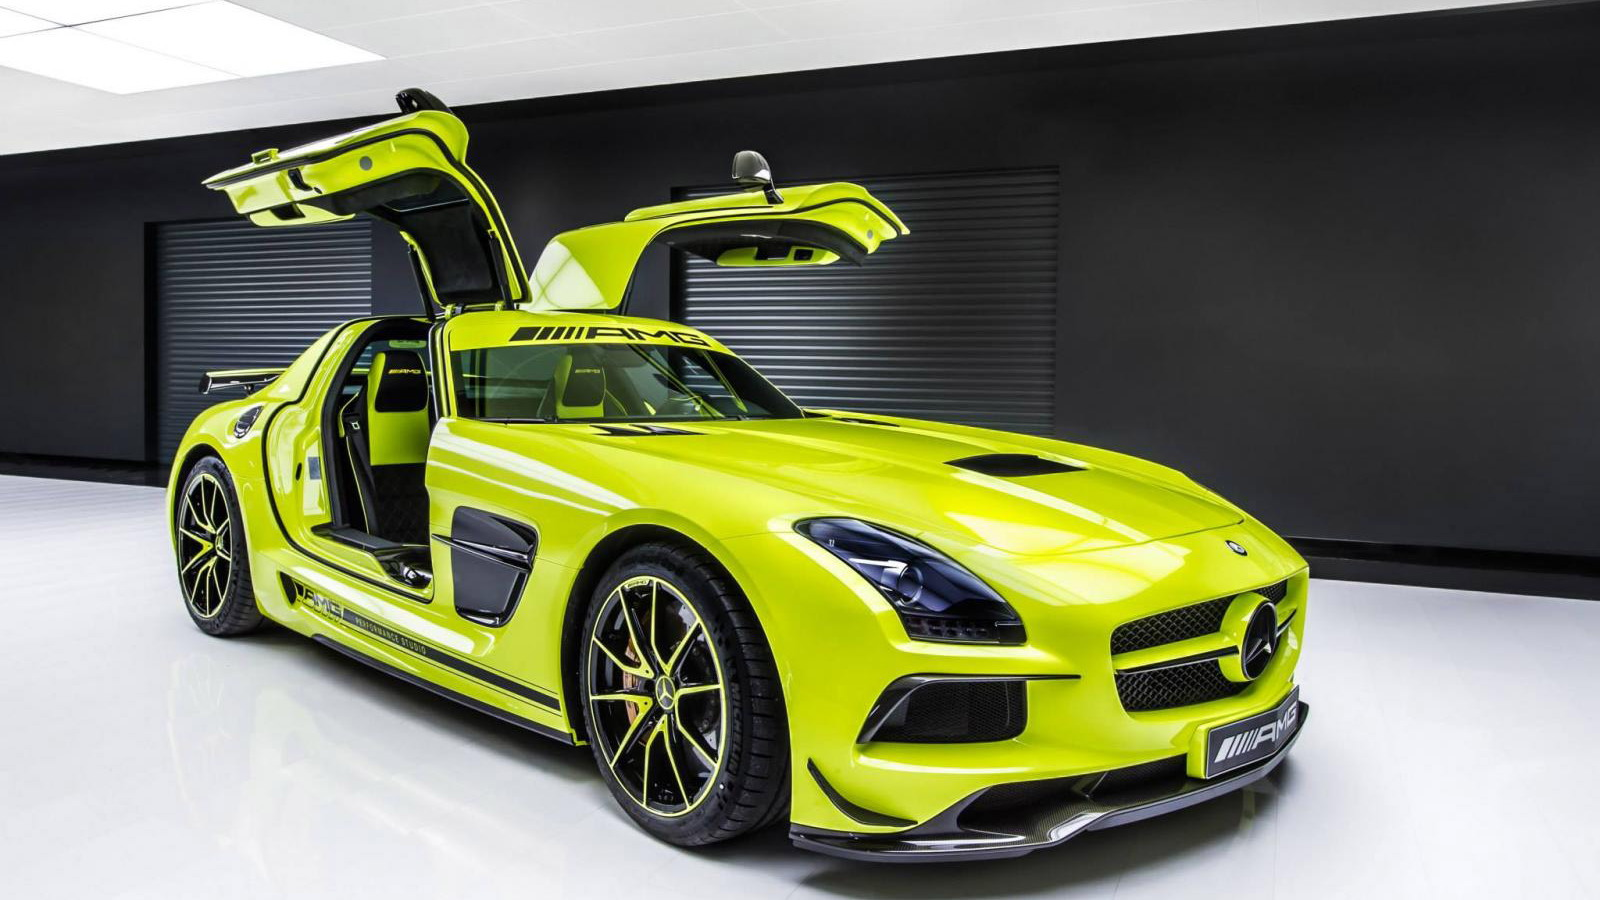 2014 Mercedes-Benz SLS AMG Black Series enhanced by the AMG Performance Studio